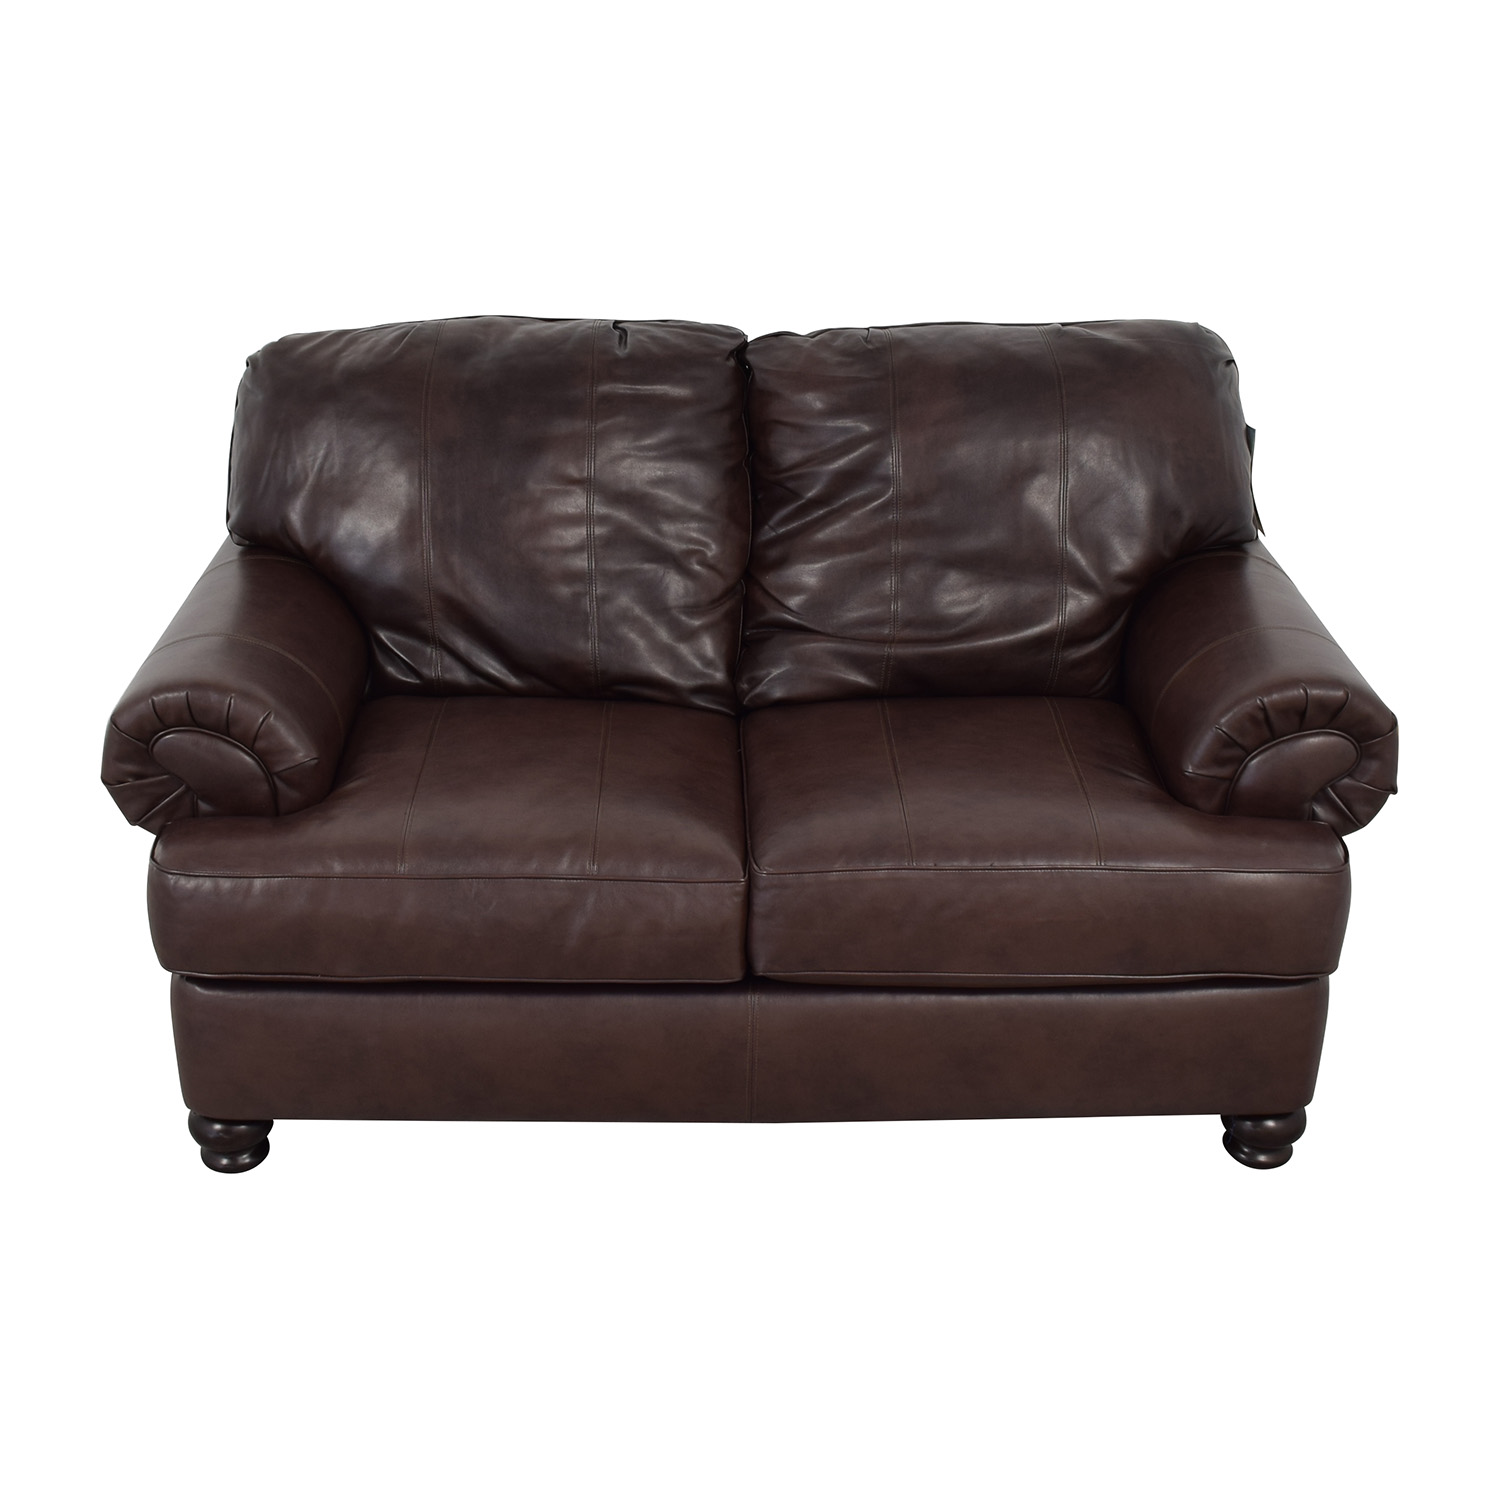 Jackson Furniture Jackson Furniture Charlotte Brown Loveseat Loveseats